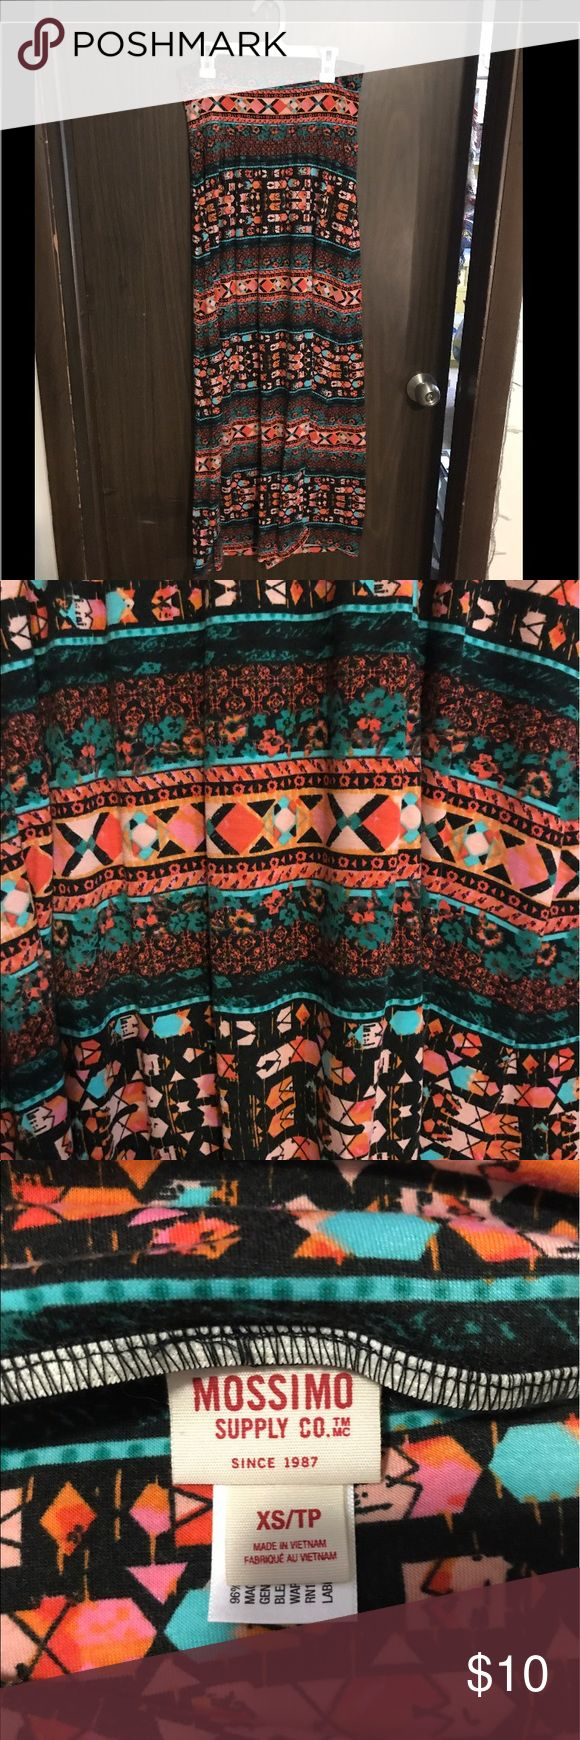 Rainbow Tribal Maxi Skirt Rainbow Tribal Maxi Skirt- LIKE BRAND NEW! Worn ONLY ONCE! Beautiful colors! Fold over waist like yoga pants! Matches with every color top! Very comfy material and slimming with the thick waist band! No defects! Bought from Target! Size XS Mossimo Supply Co Skirts Maxi